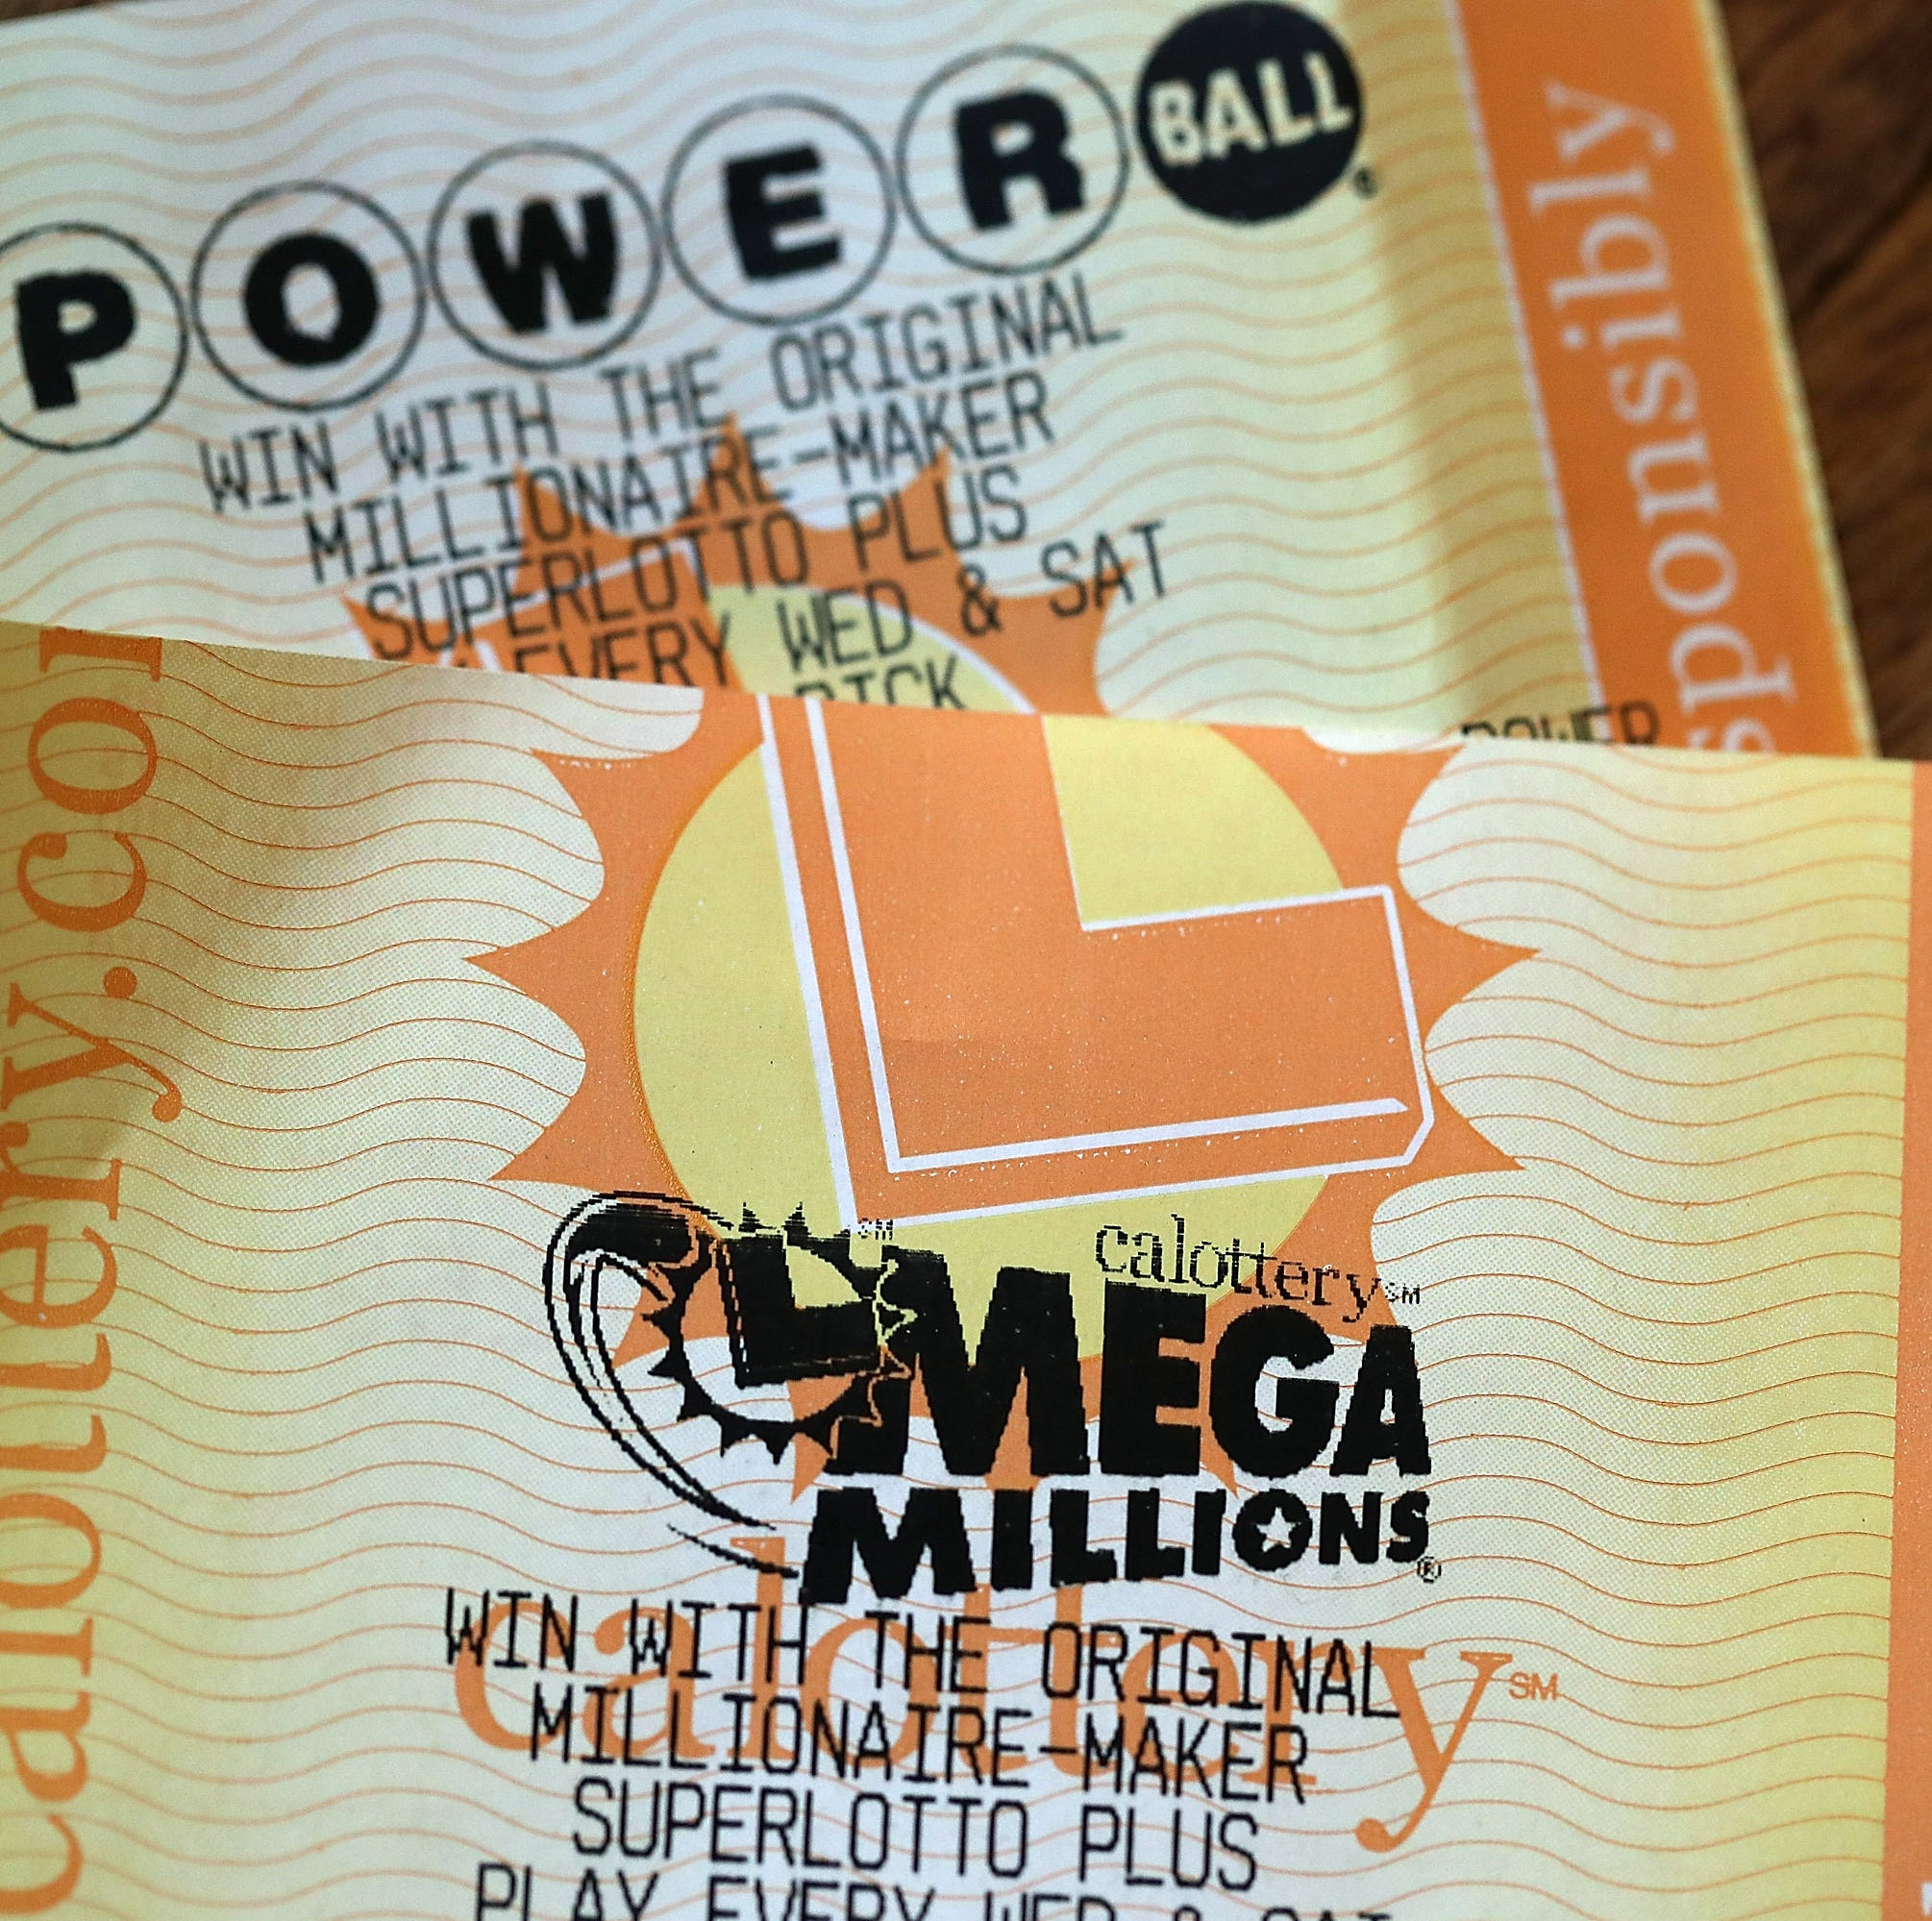 What are your odds of winning Mega Millions or Powerball? Or both?